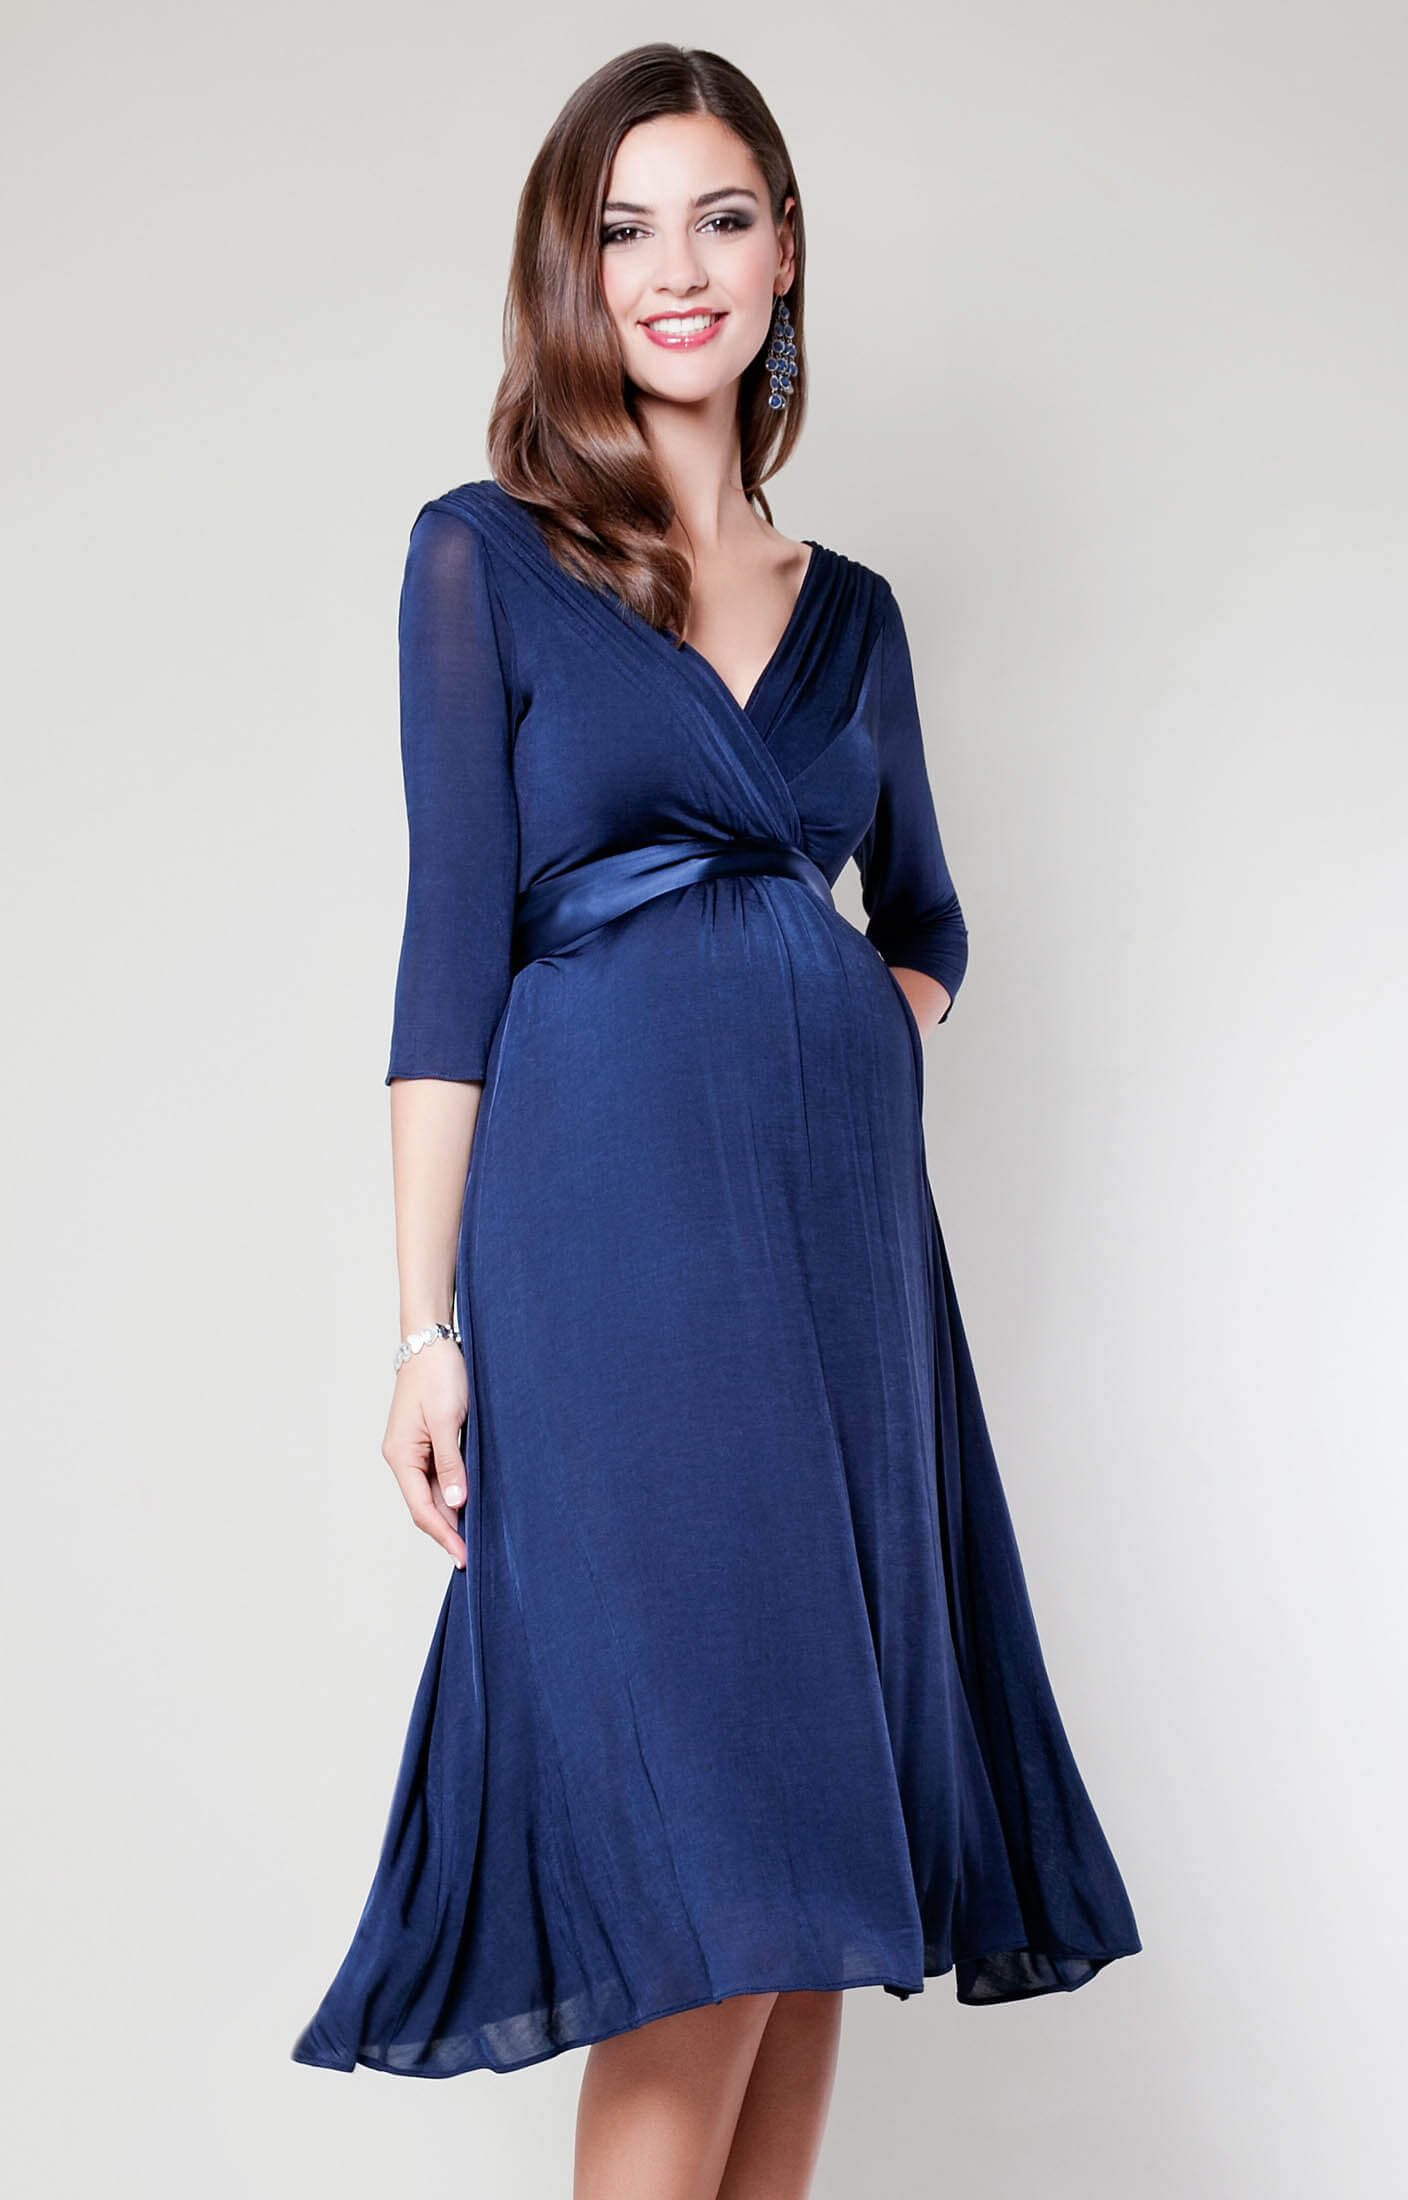 Willow Maternity Dress (Midnight Blue) - Maternity Wedding Dresses ... 64c21ccc8bde